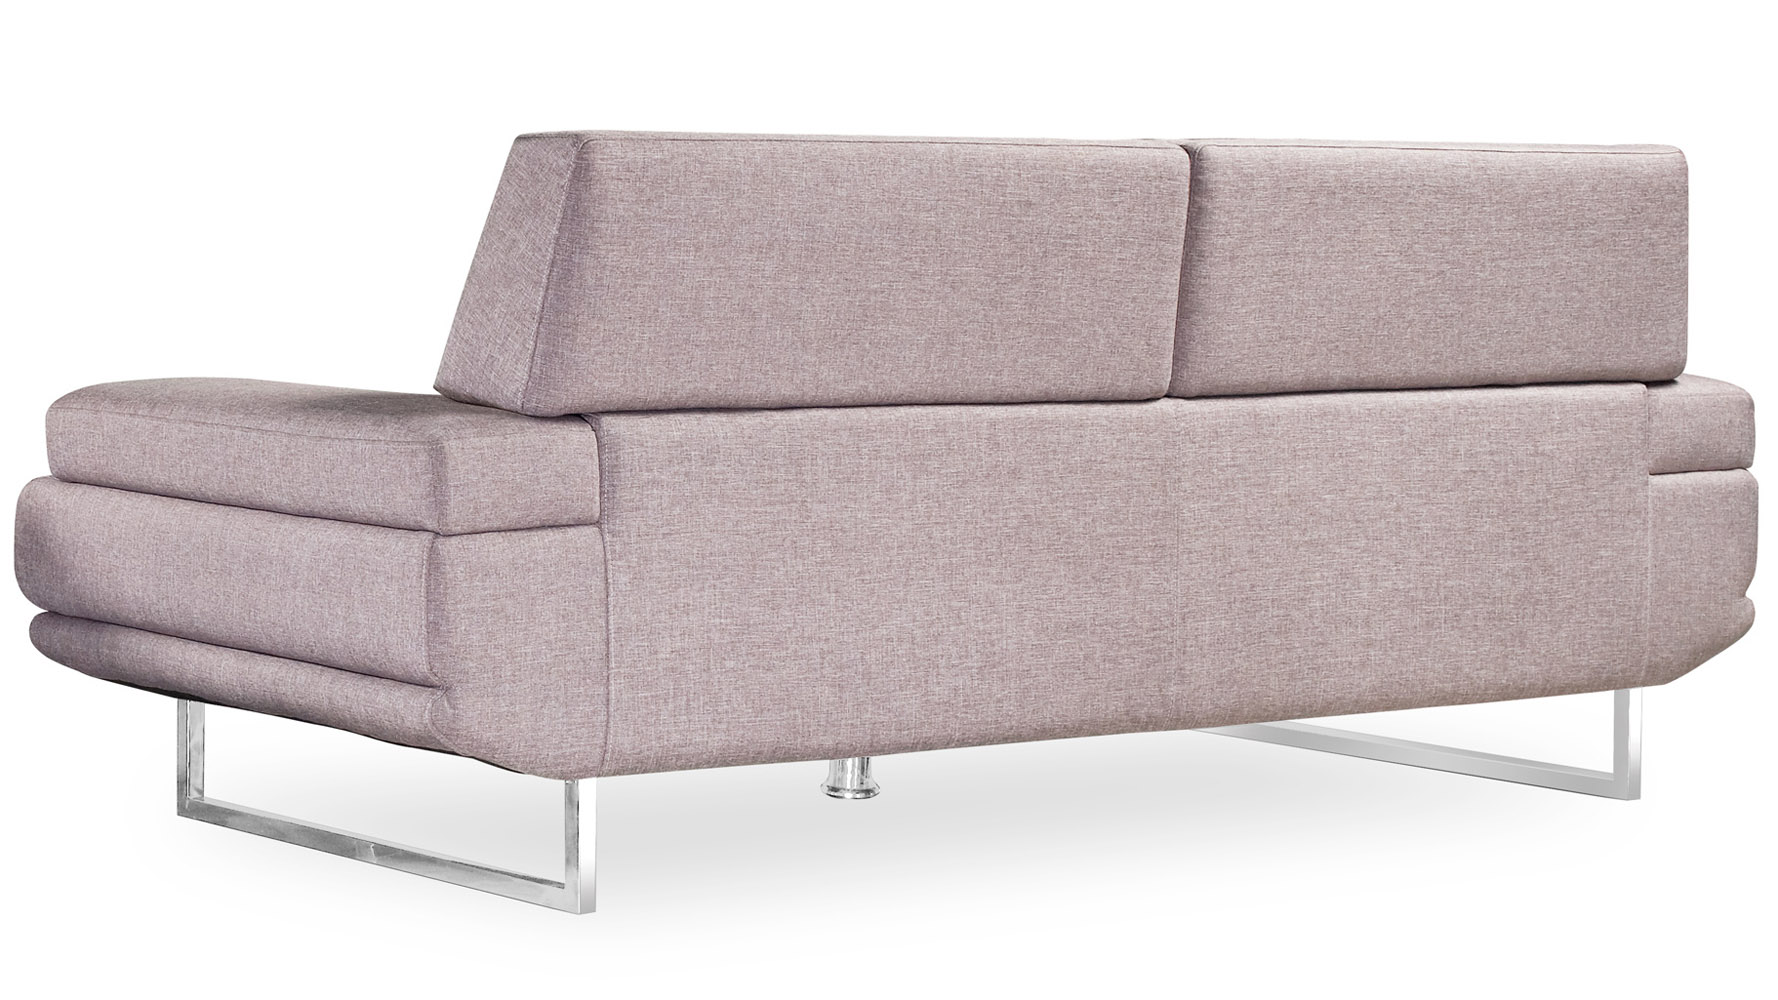 steel sofa set online chennai bobs furniture recliner modern taupe fabric upholstered 2 piece with